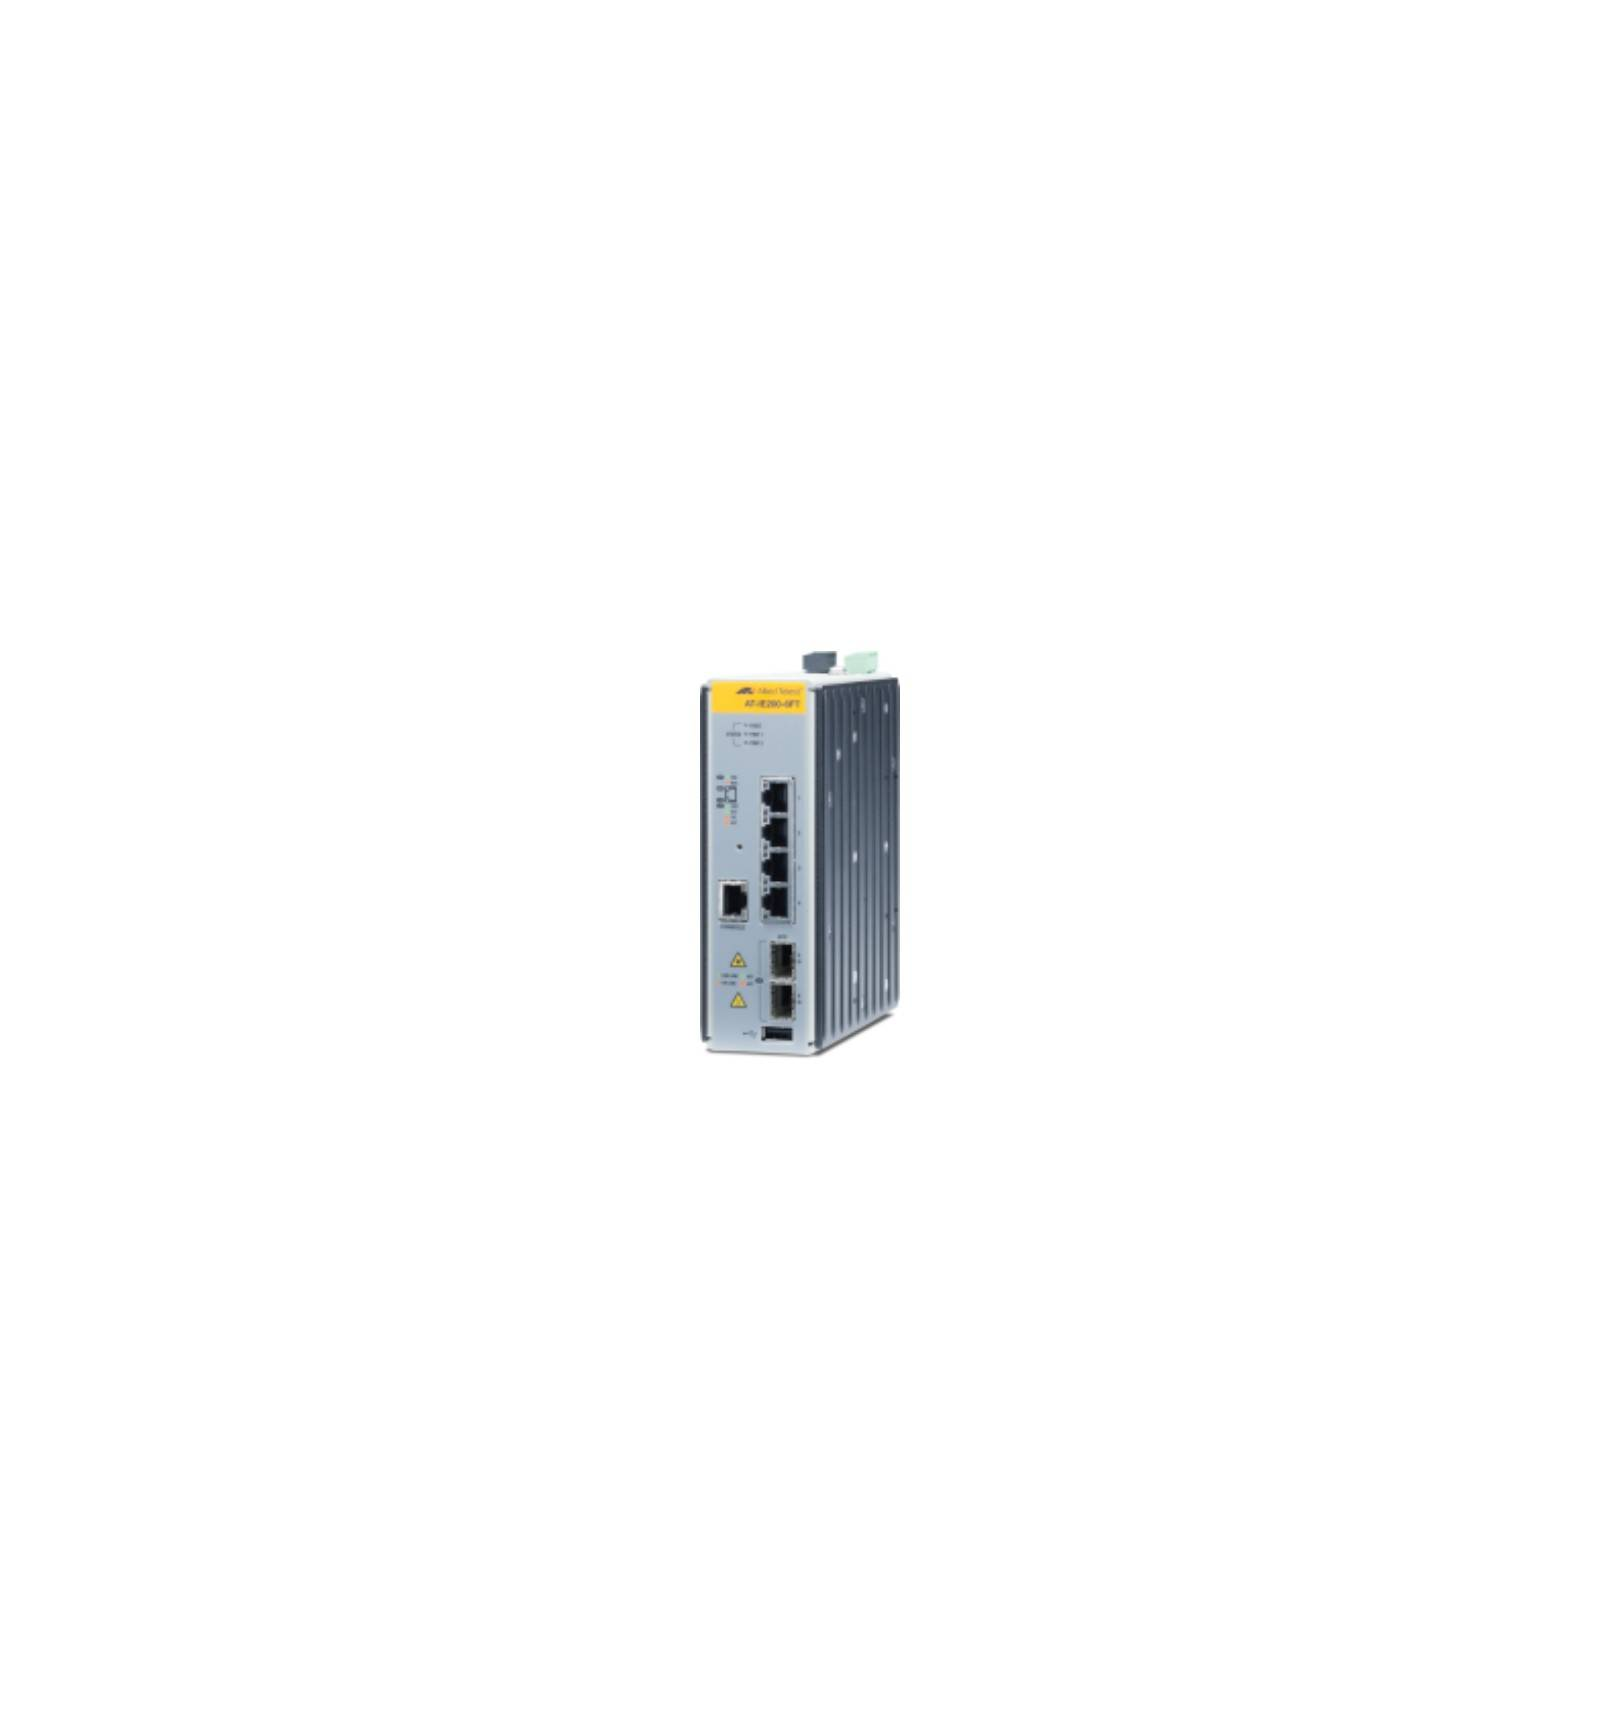 Allied Telesis AT-IE200-6FT-80 Managed network switch L2 Fast Ethernet (10/100) Harmaa